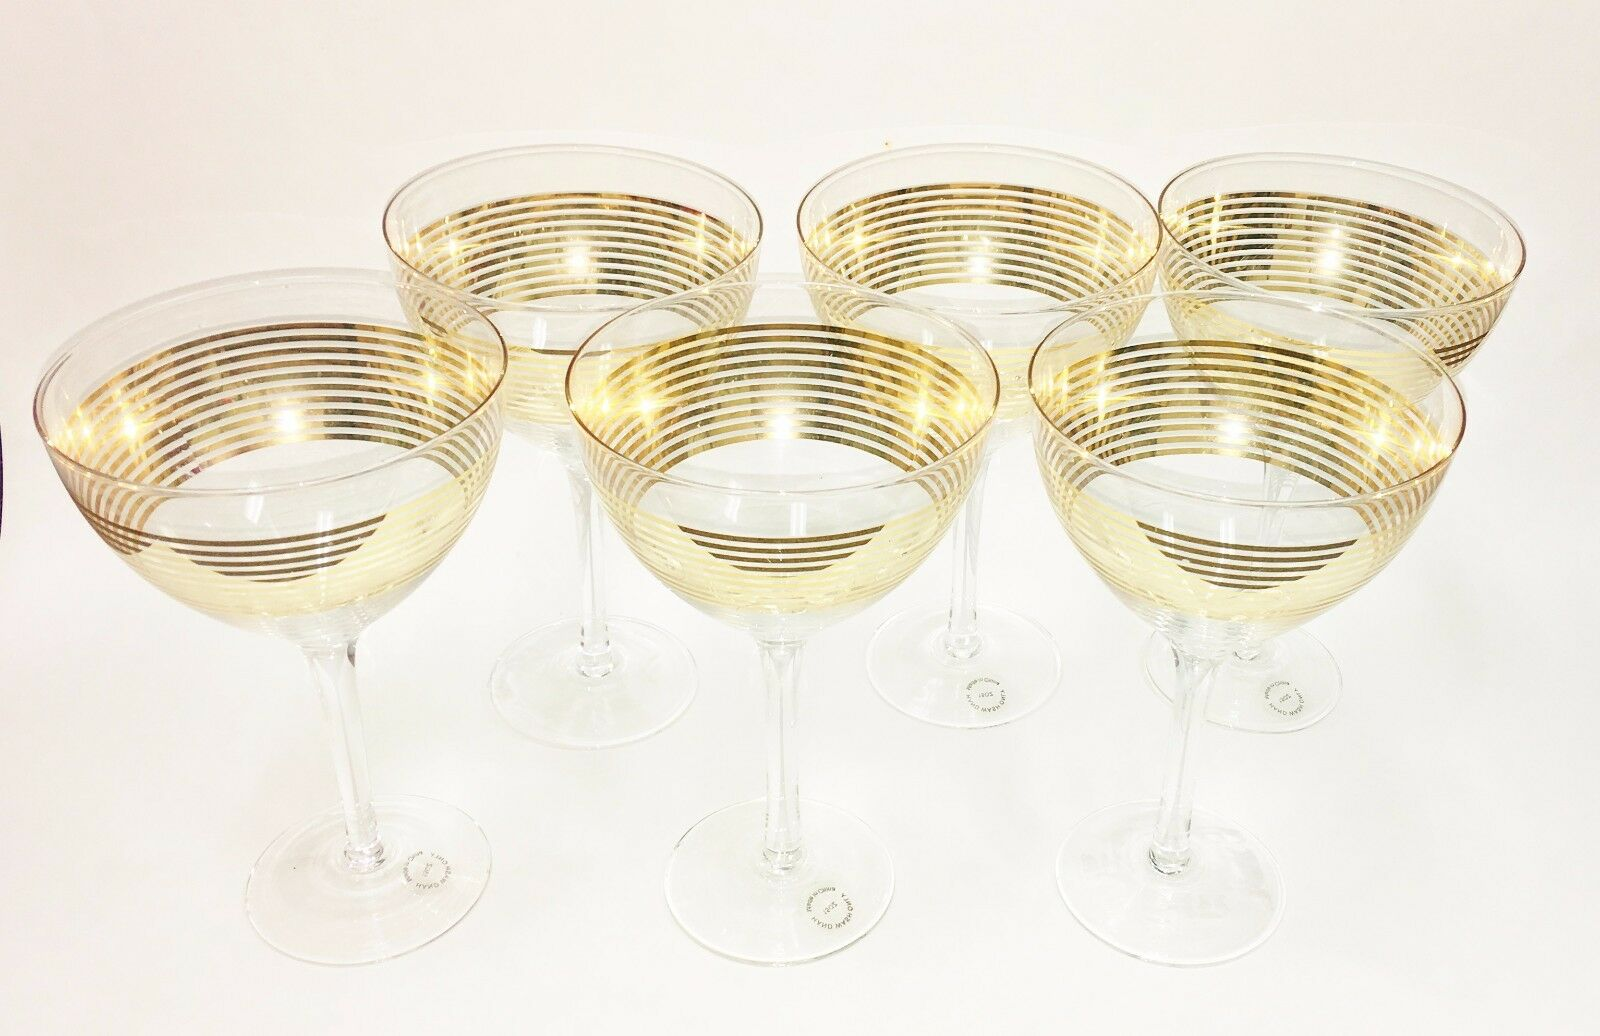 NEW SET OF SIX 6 METALLIC or STRIPE + CLEAR WIDE WINE GLASS+STEM+BASE,GOBLET